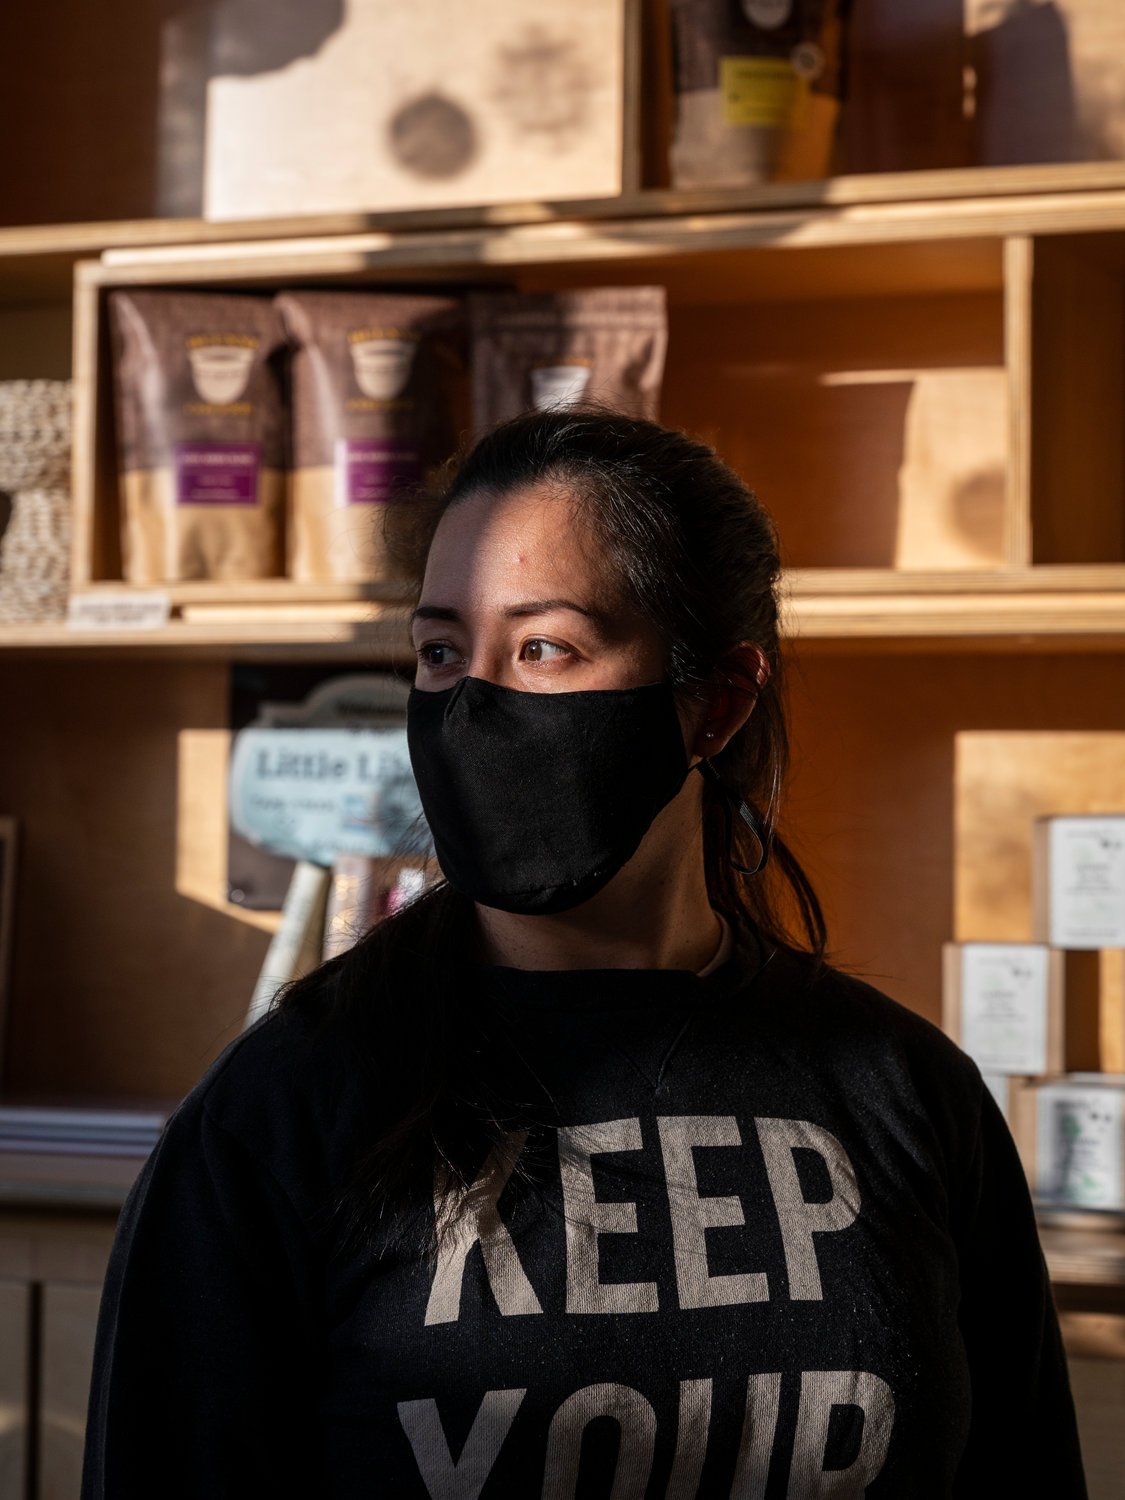 Maribel Acosta was a familiar face for many visiting Buunni Coffee on Riverdale Avenue — even behind the face mask. Even though her store is closing, Buunni co-owner Sarina Prabasi says she'll find room for Acosta and other employees at Buunni's three remaining locations.